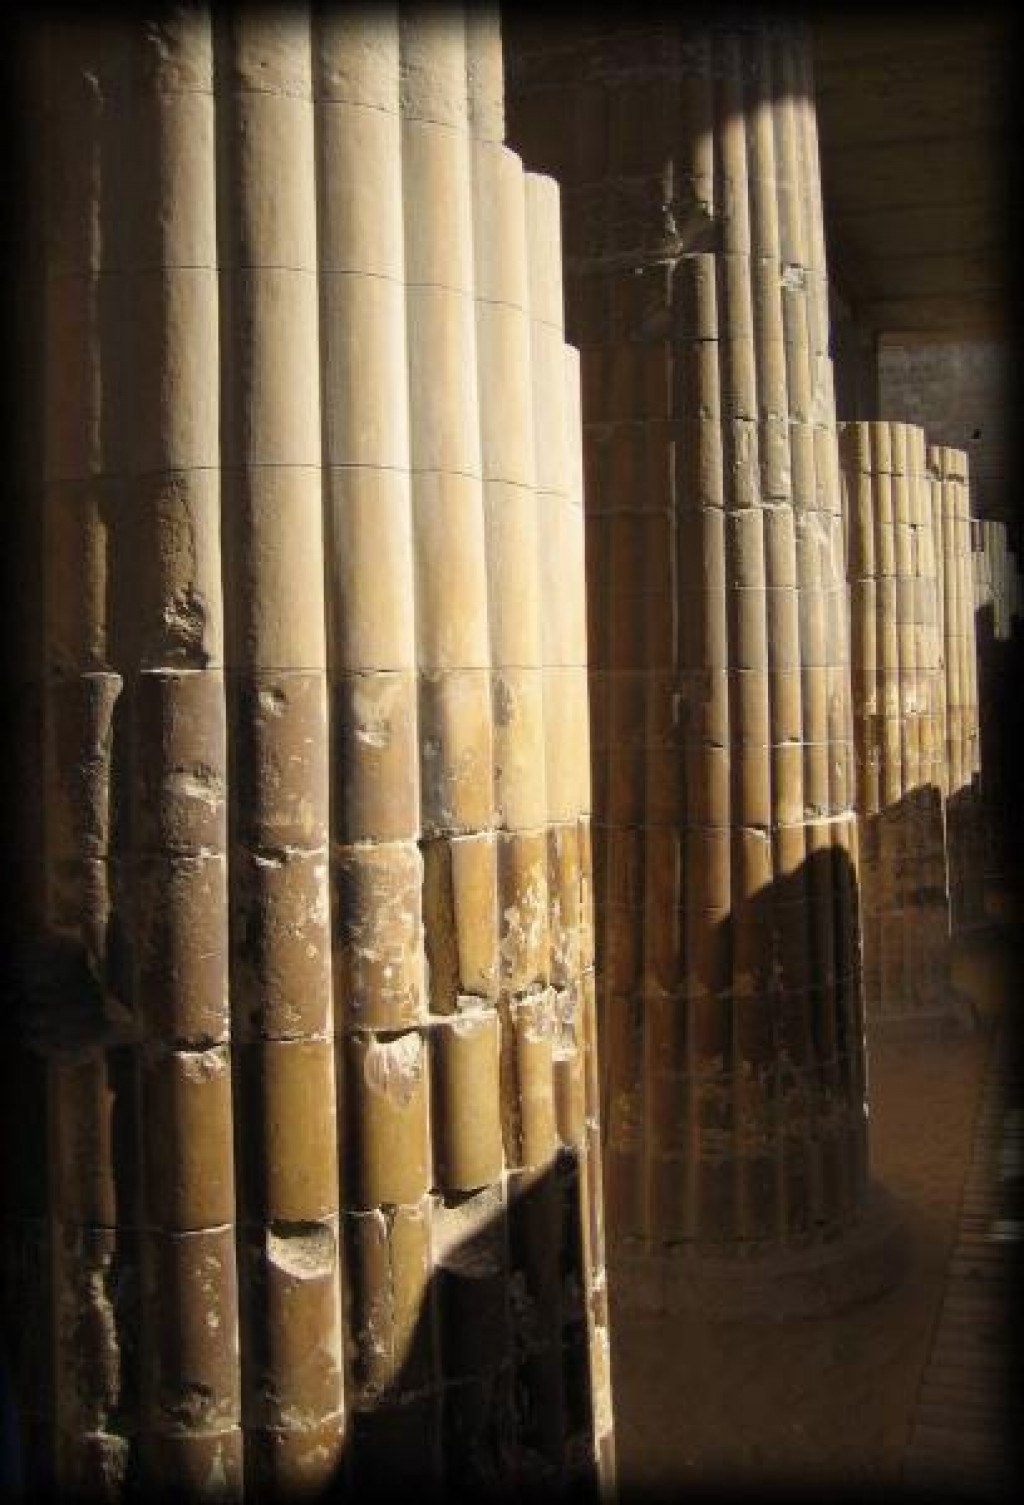 It is a long hall with twenty pairs (40 total) of limestone columns.